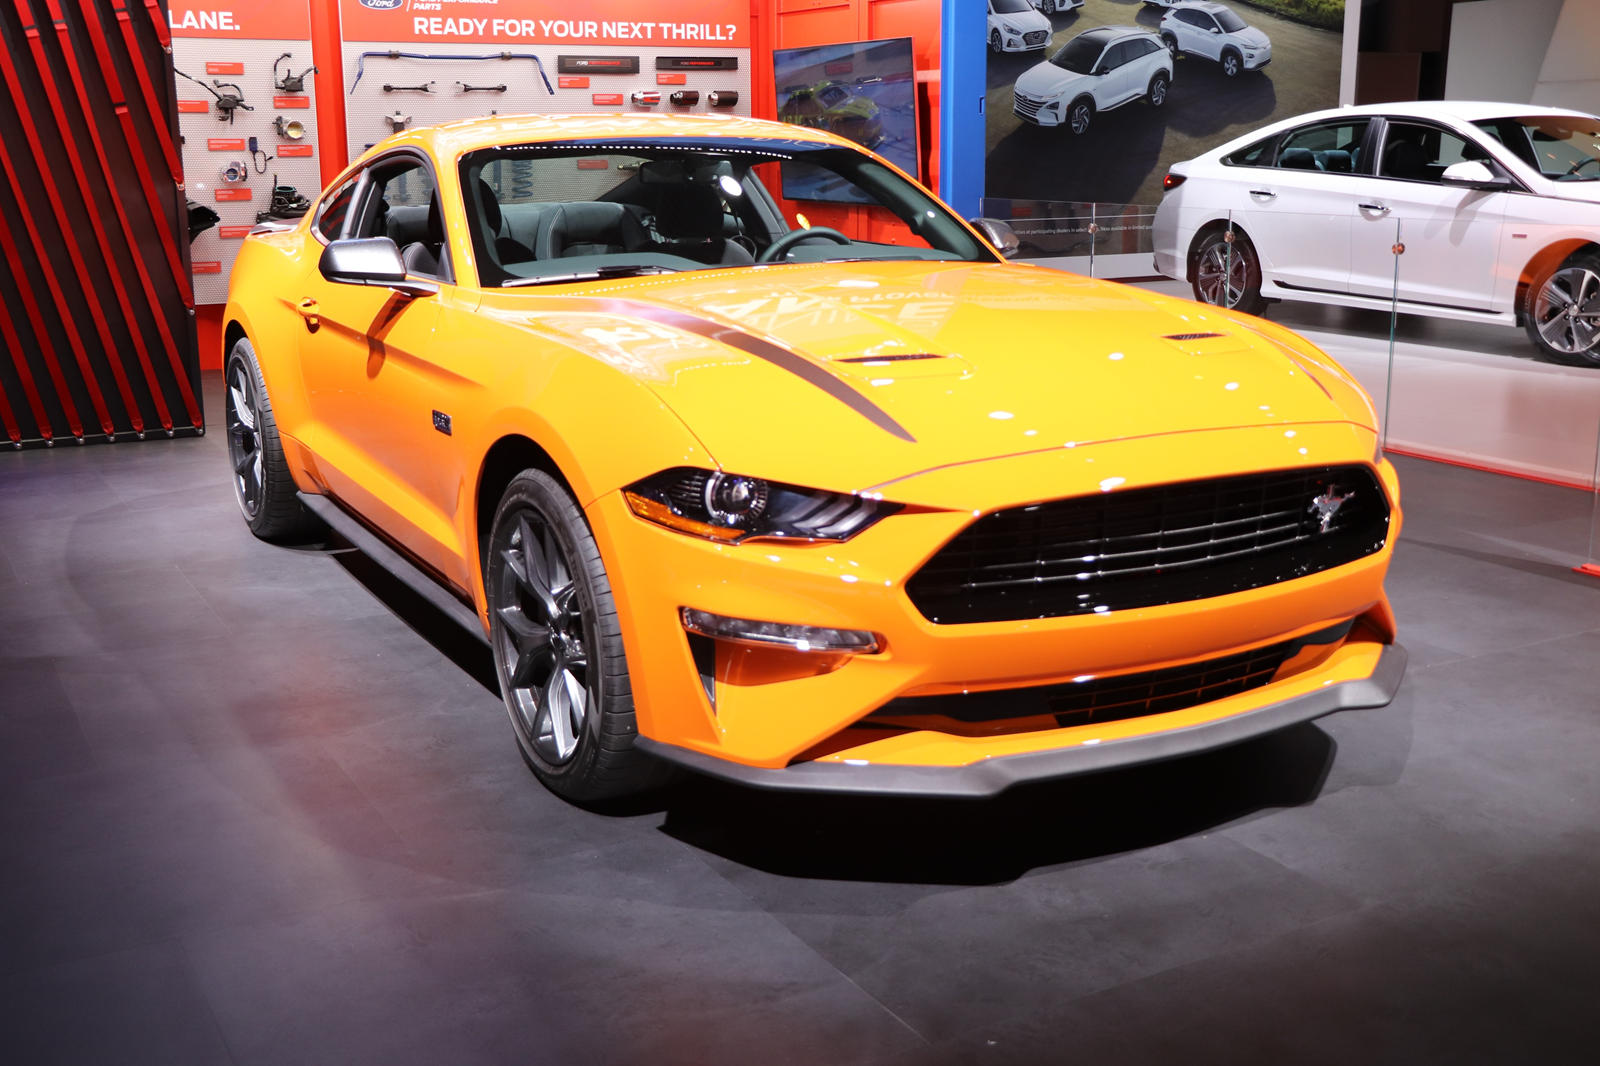 2019 Ford Mustang 2.3 Turbo 0-60 Time